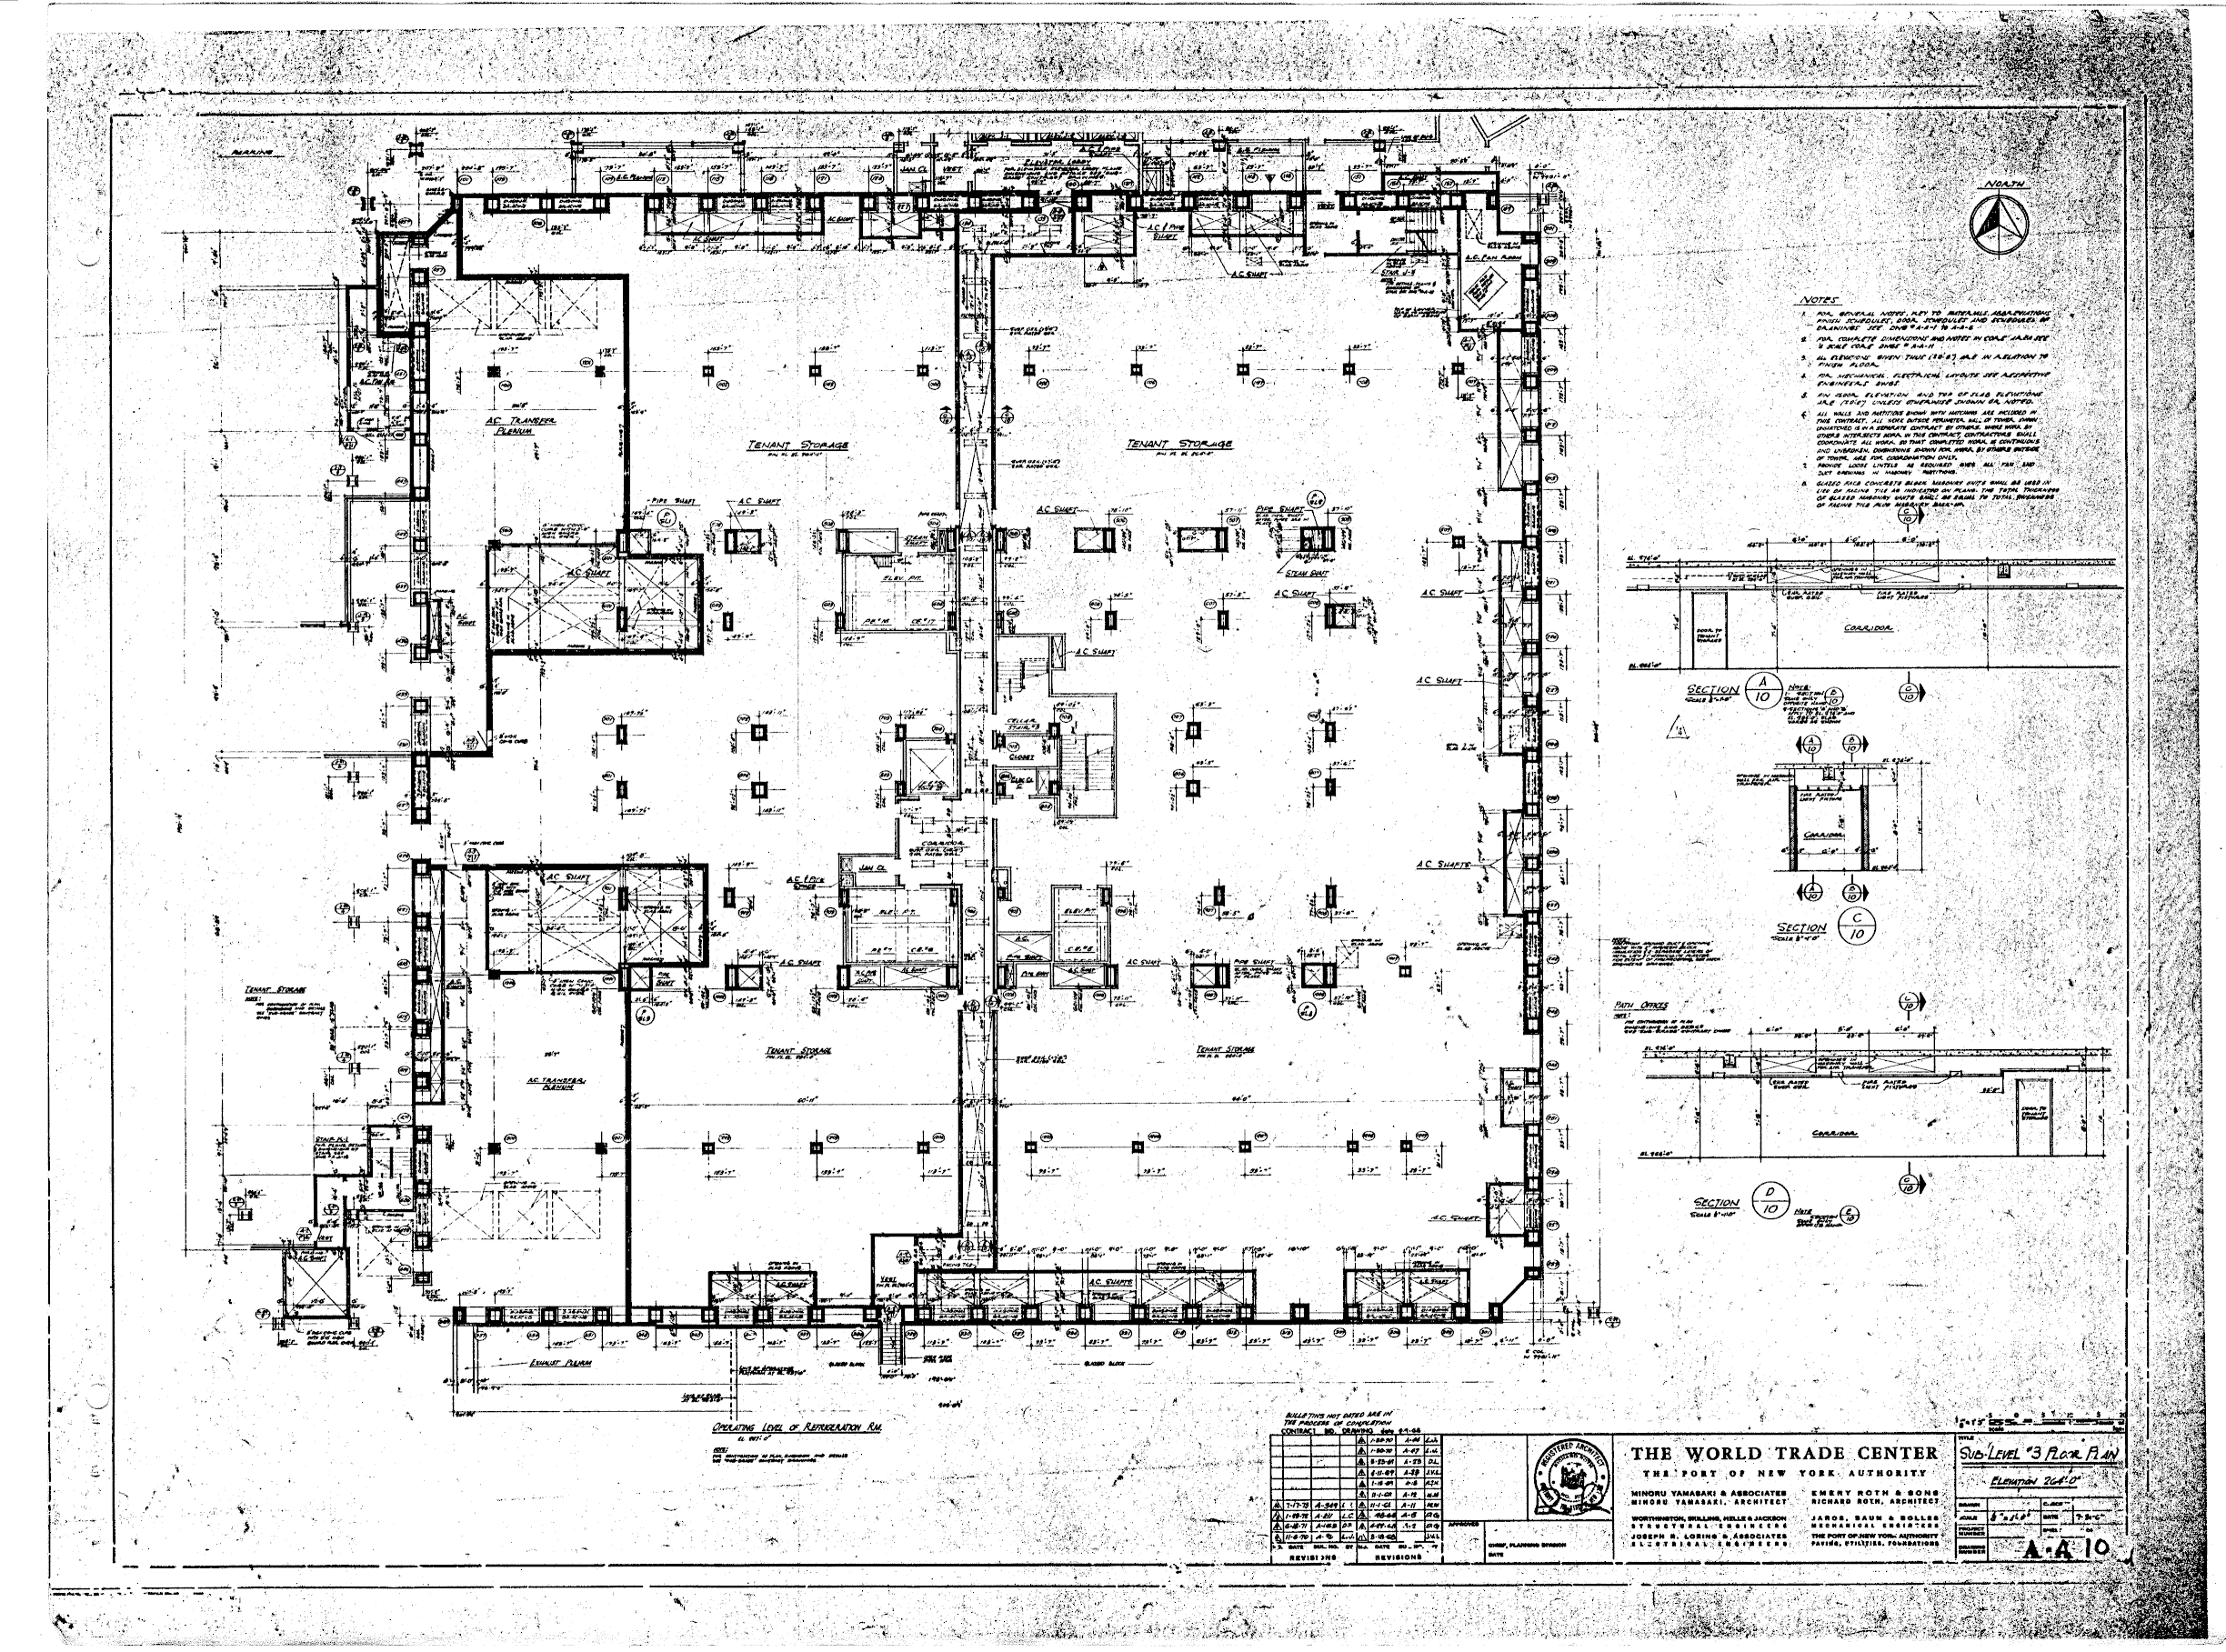 Restaurant Blueprints